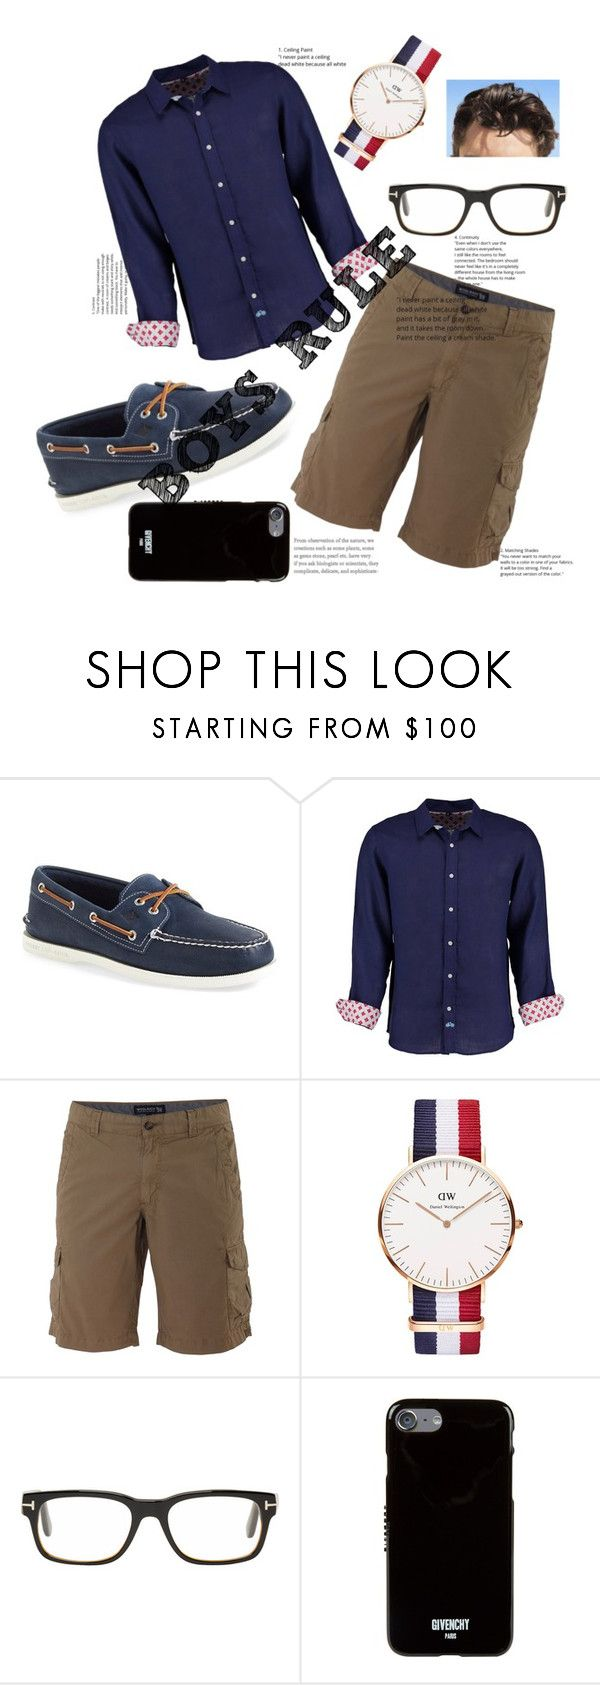 """""""Good Boy 👔"""" by missybela ❤ liked on Polyvore featuring Sperry, Tobias, Woolrich, Daniel Wellington, Tom Ford, Givenchy, vintage, men's fashion and menswear"""